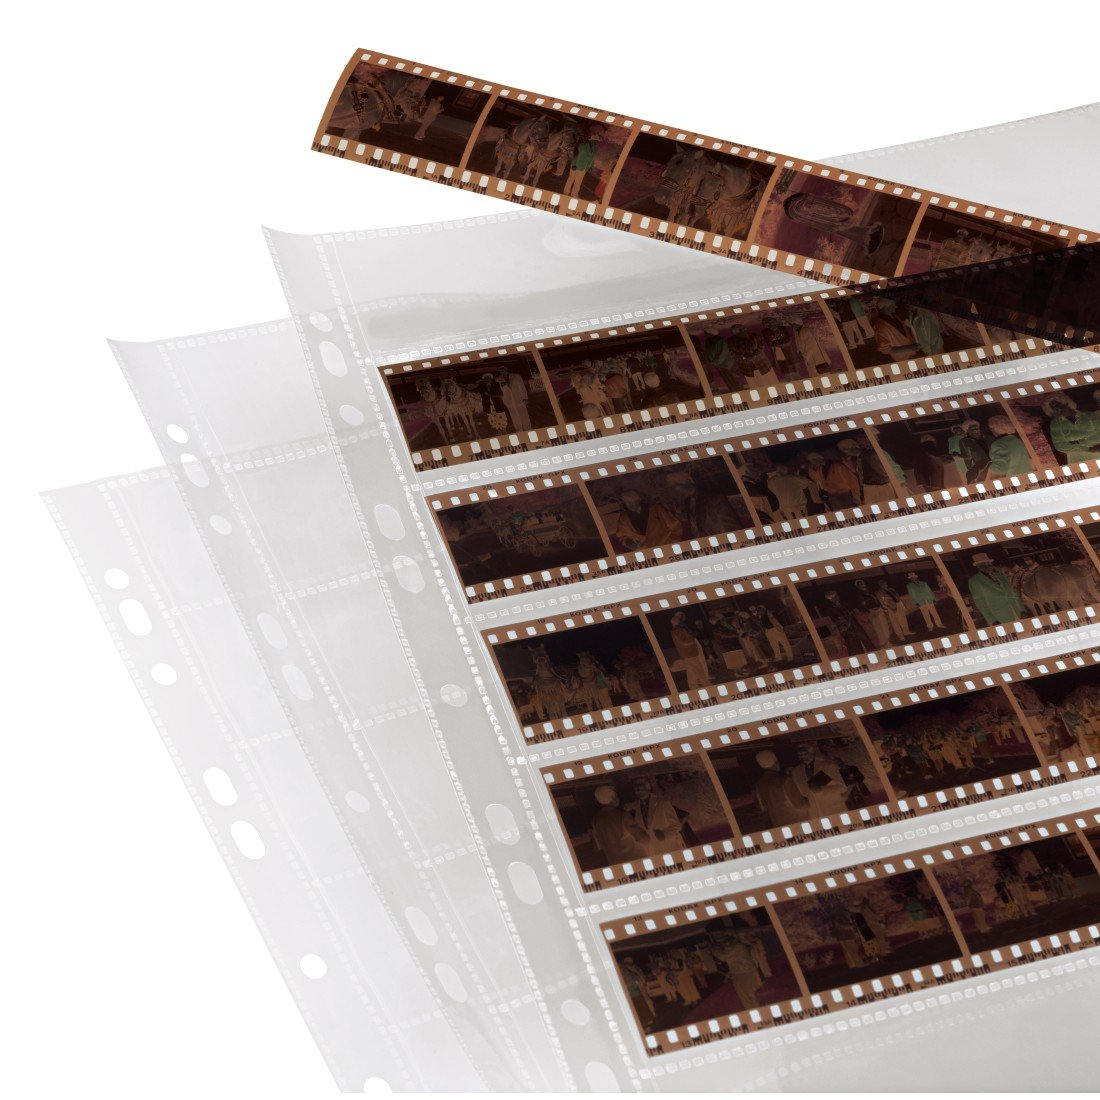 Hama Negative File Storage Sleeves, Each Holding 7 Strips of 6 (24 x 36 mm) Frames, Polypropylene (Pack of 100) by Hama